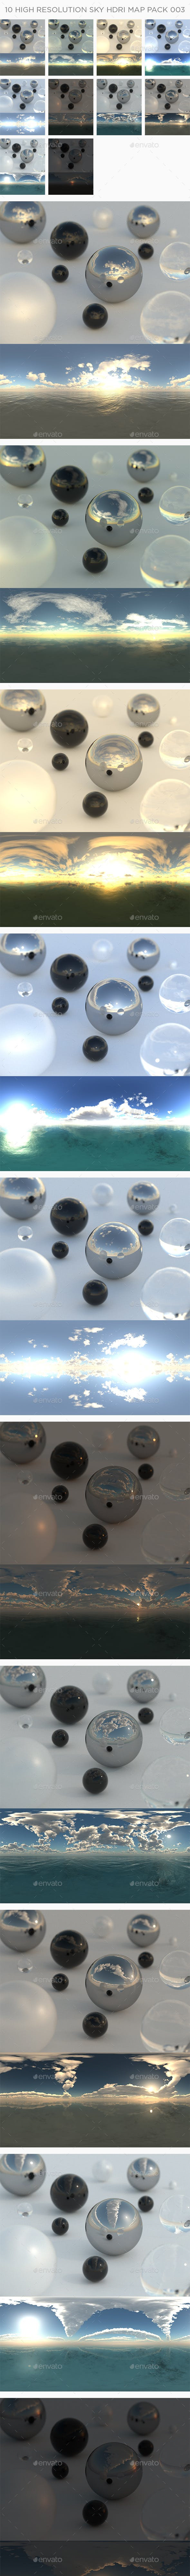 10 High Resolution Sky HDRi Maps Pack 003 - 3DOcean Item for Sale